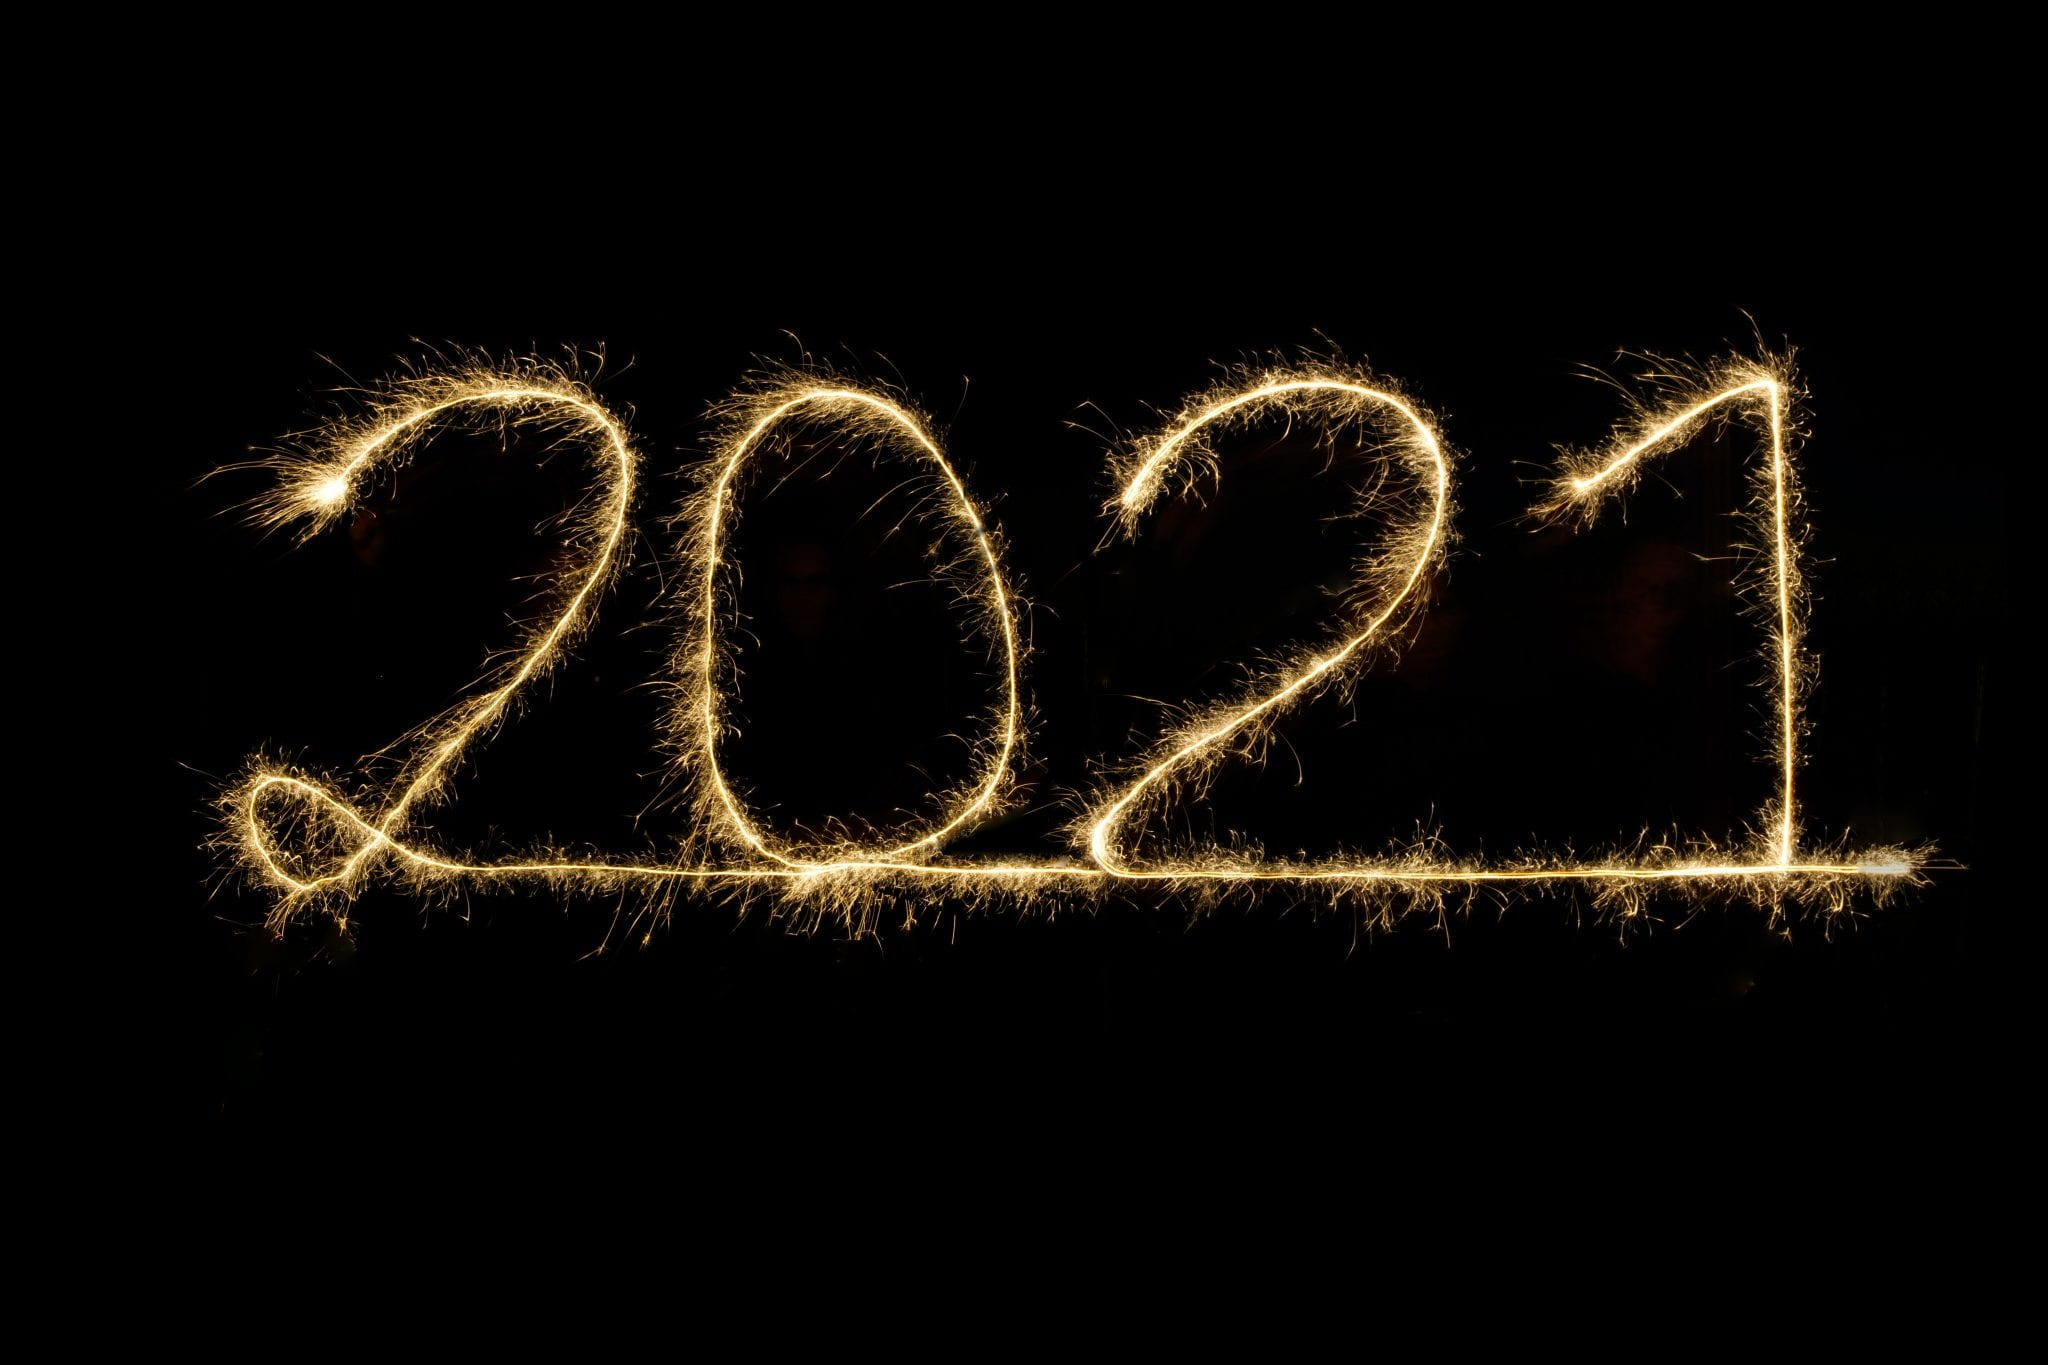 2021 New Year's Prediction